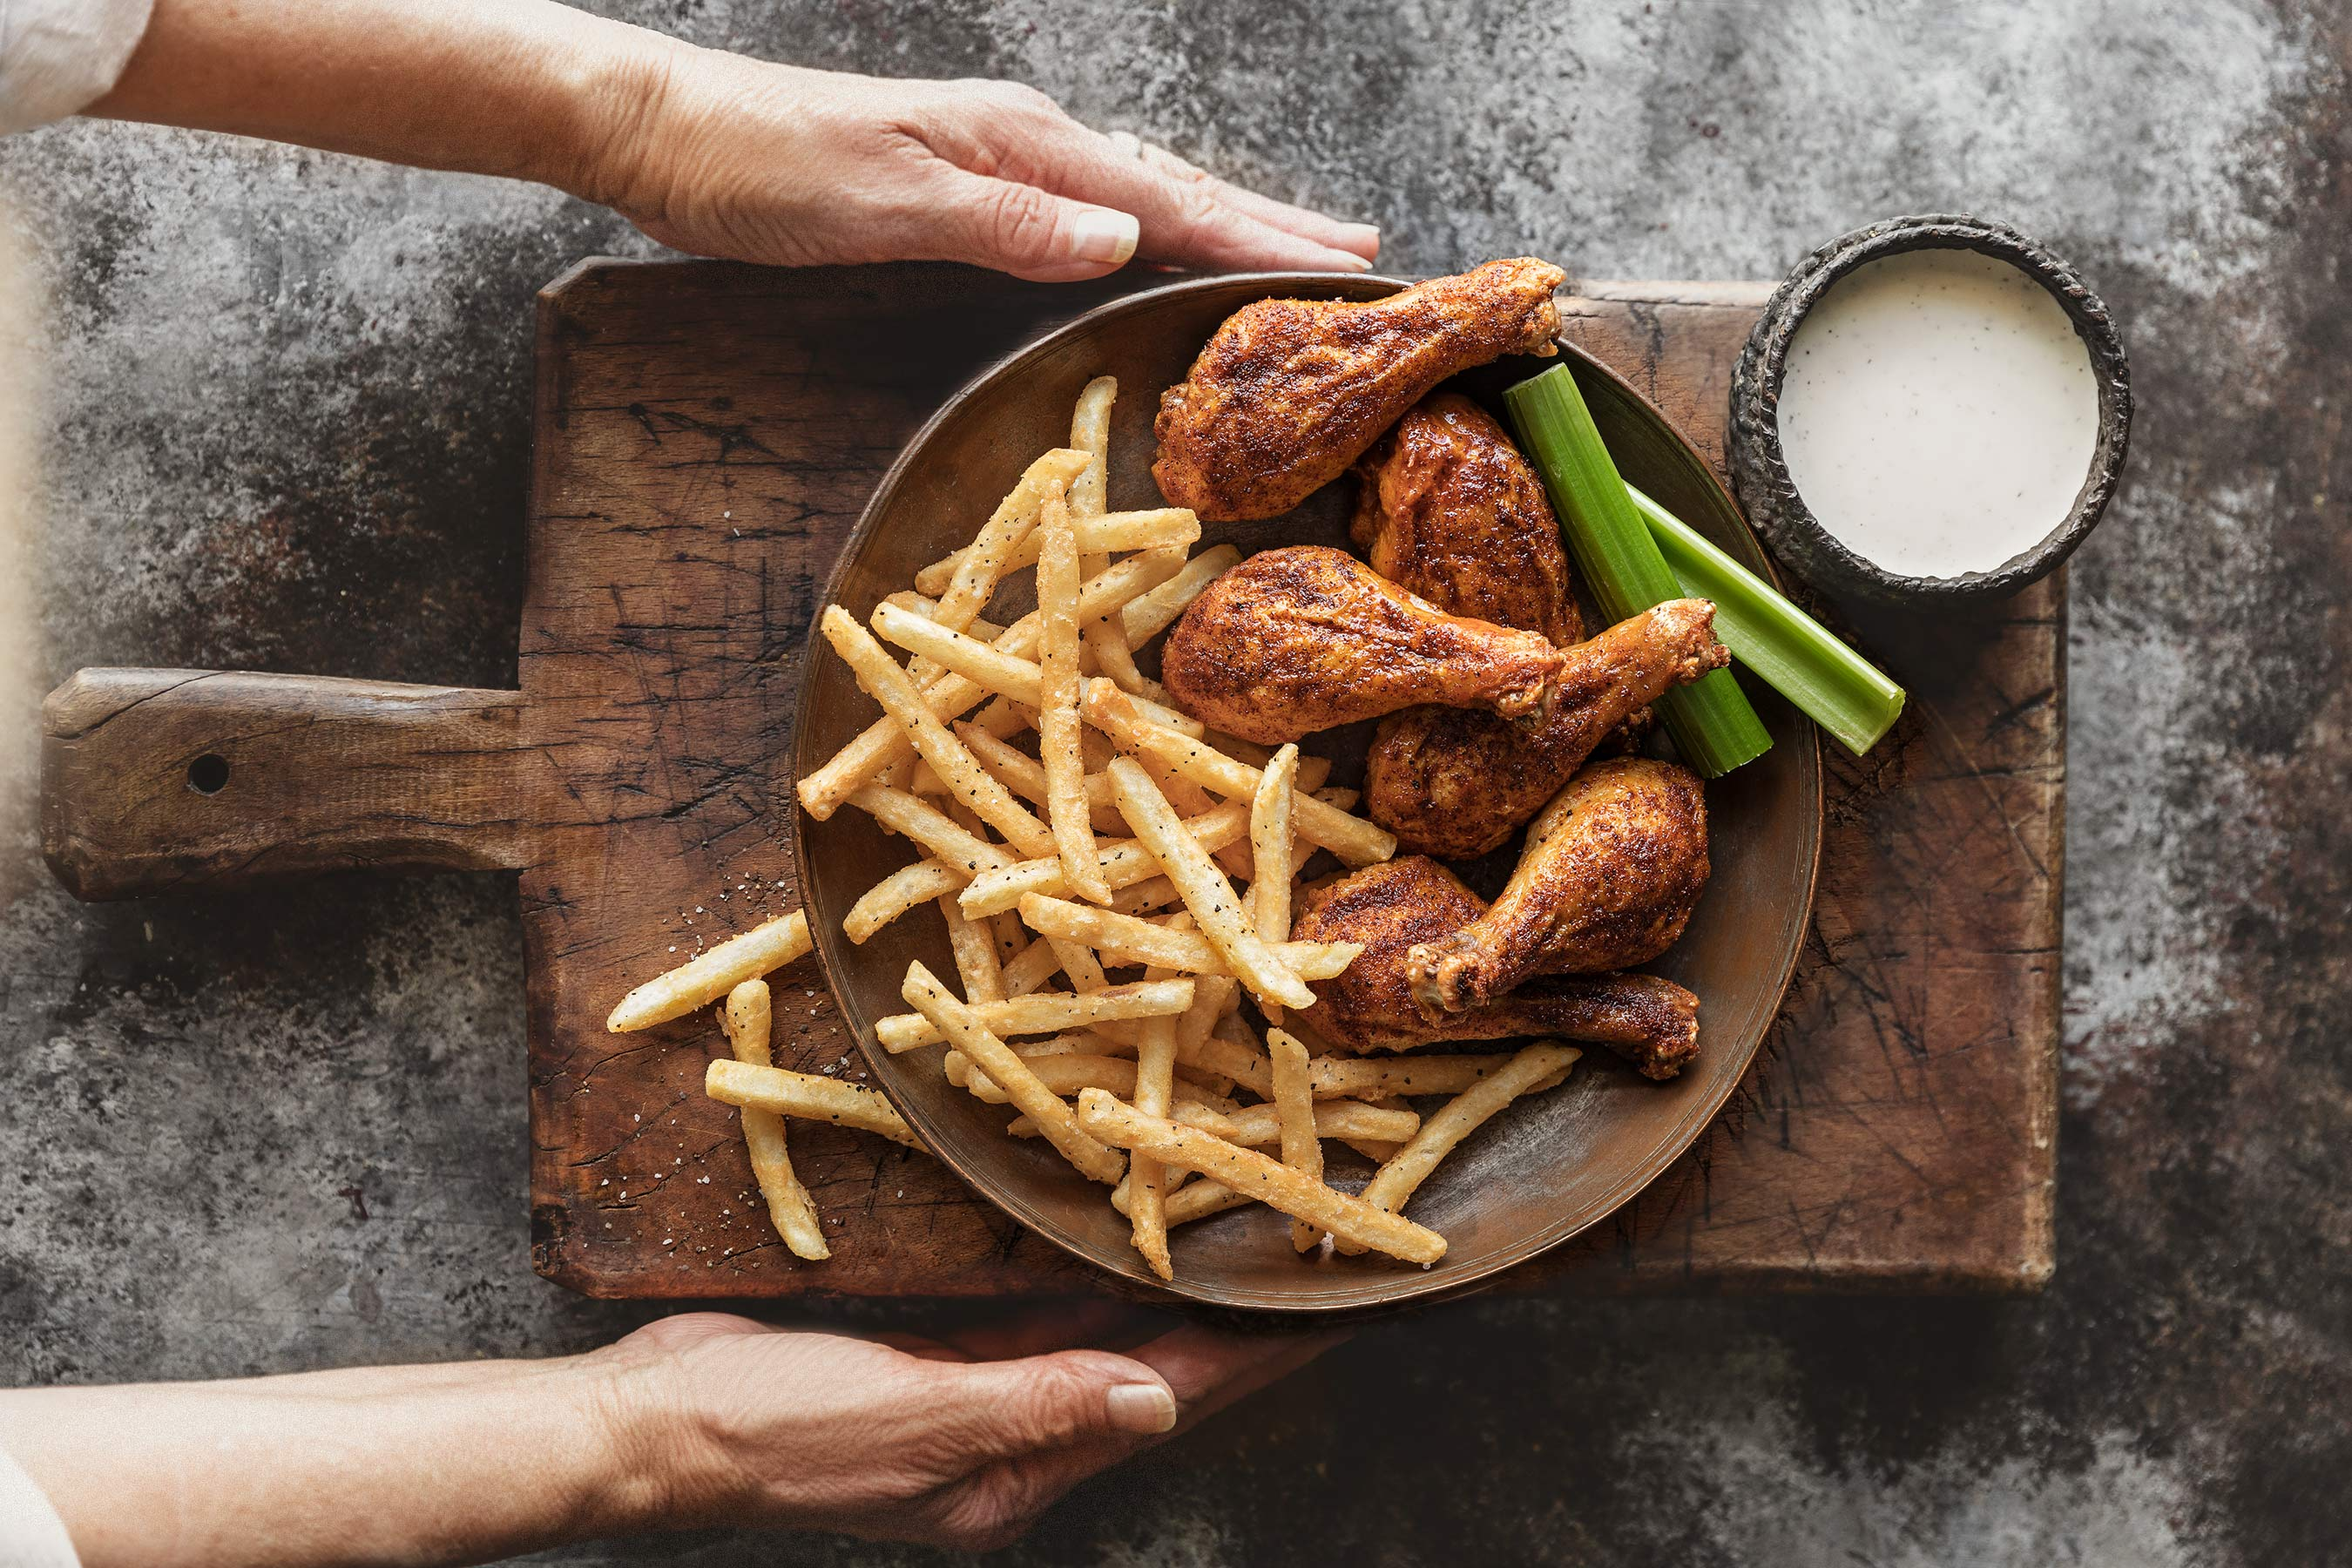 Drumsticks and Fries with celery and ranch.  Hands serving it on a wood board